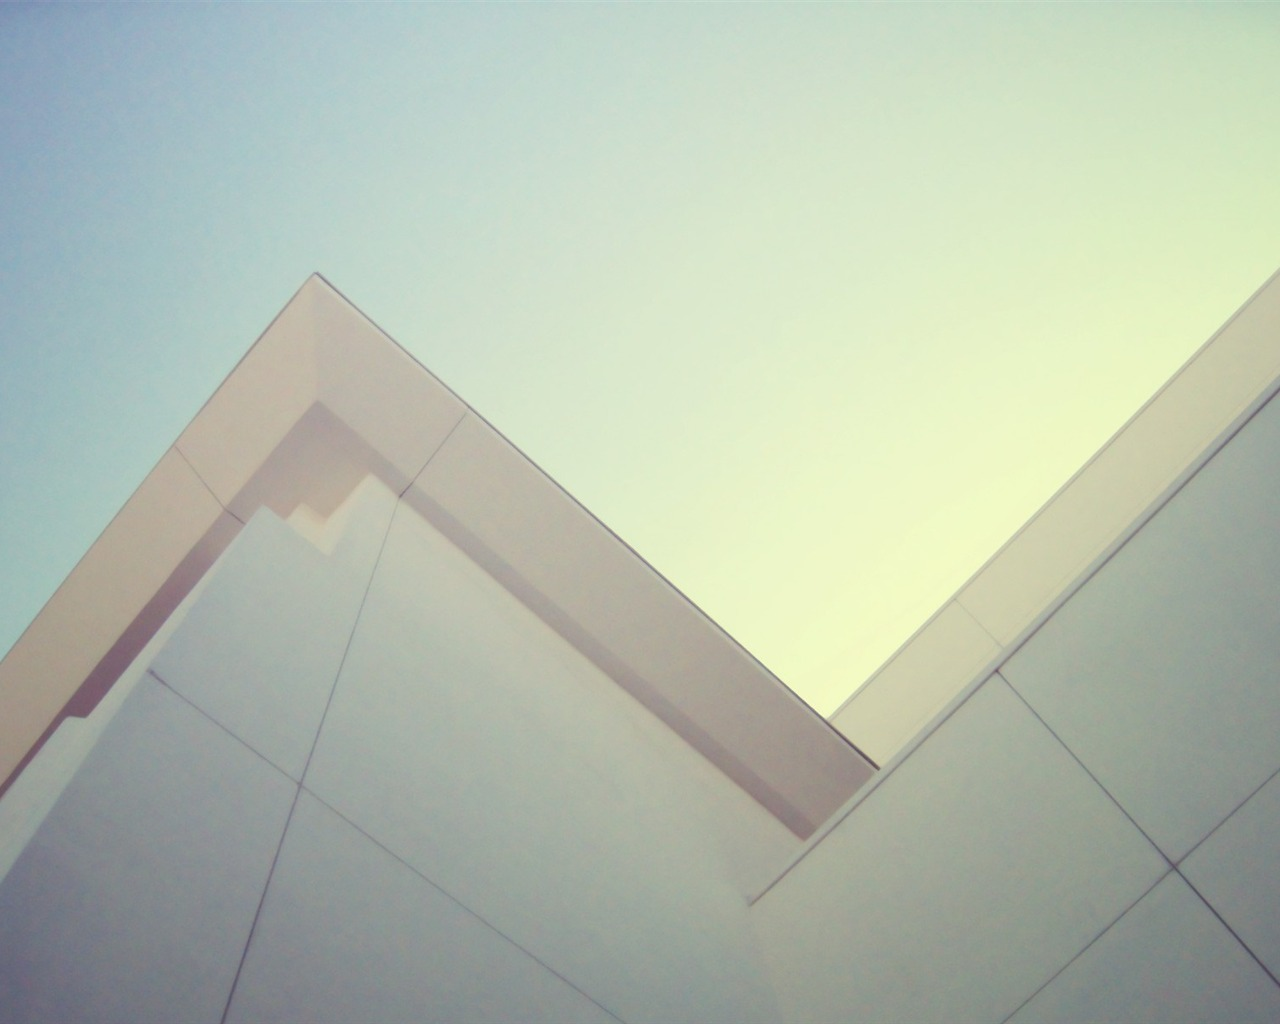 Architectural point of view-LOMO desktop wallpaper - 1280x1024 wallpaper download